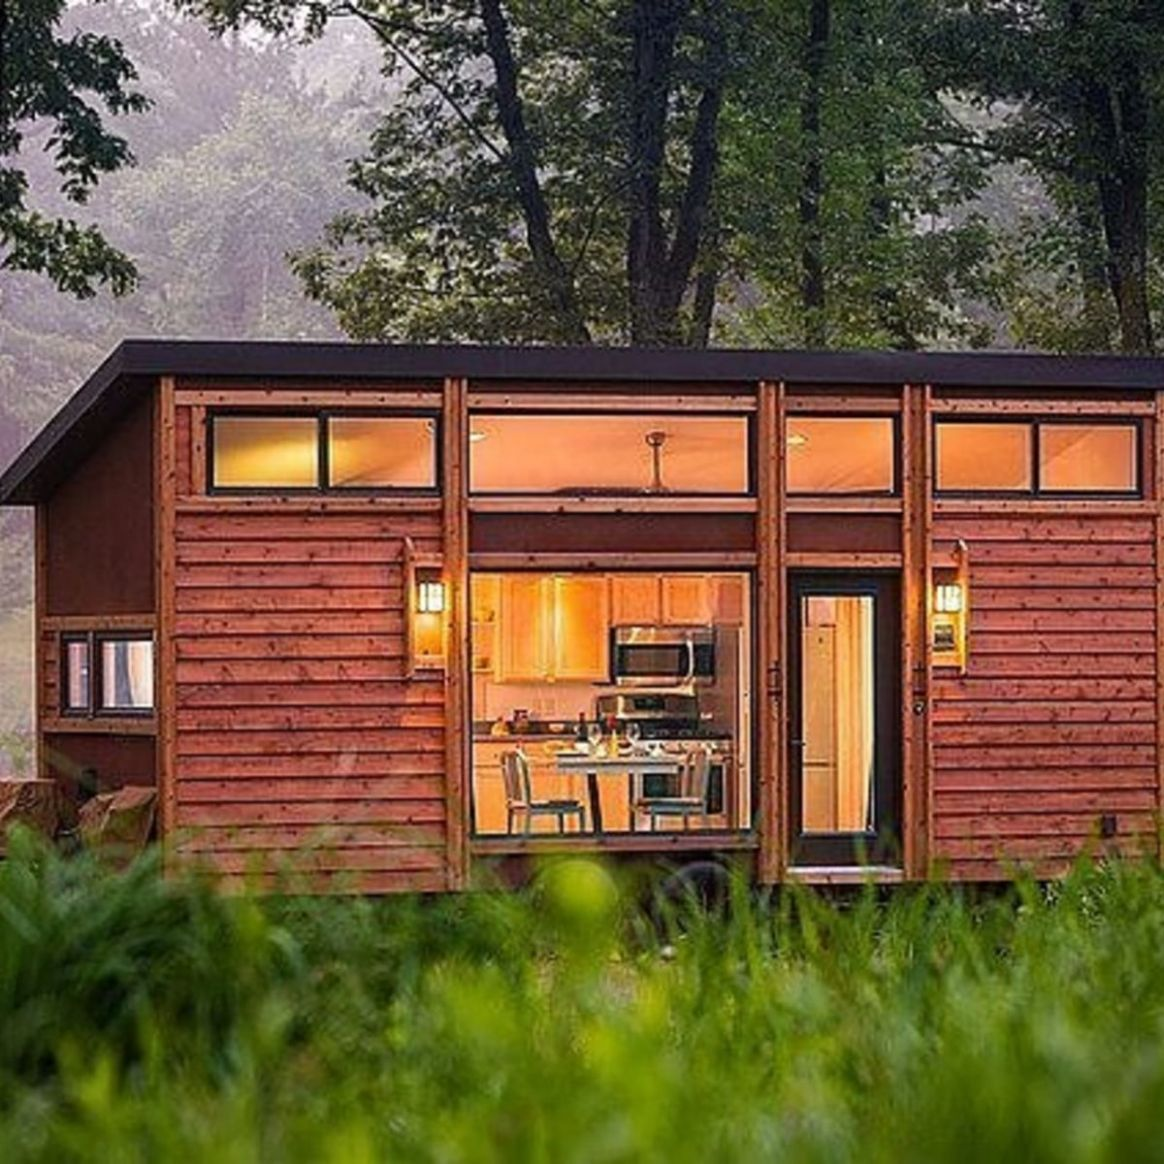 """ESCAPE RV & Tiny Homes """"Traveler"""" - Tiny House for Sale in Rice Lake,  Wisconsin - Tiny House Listings - tiny house wisconsin"""